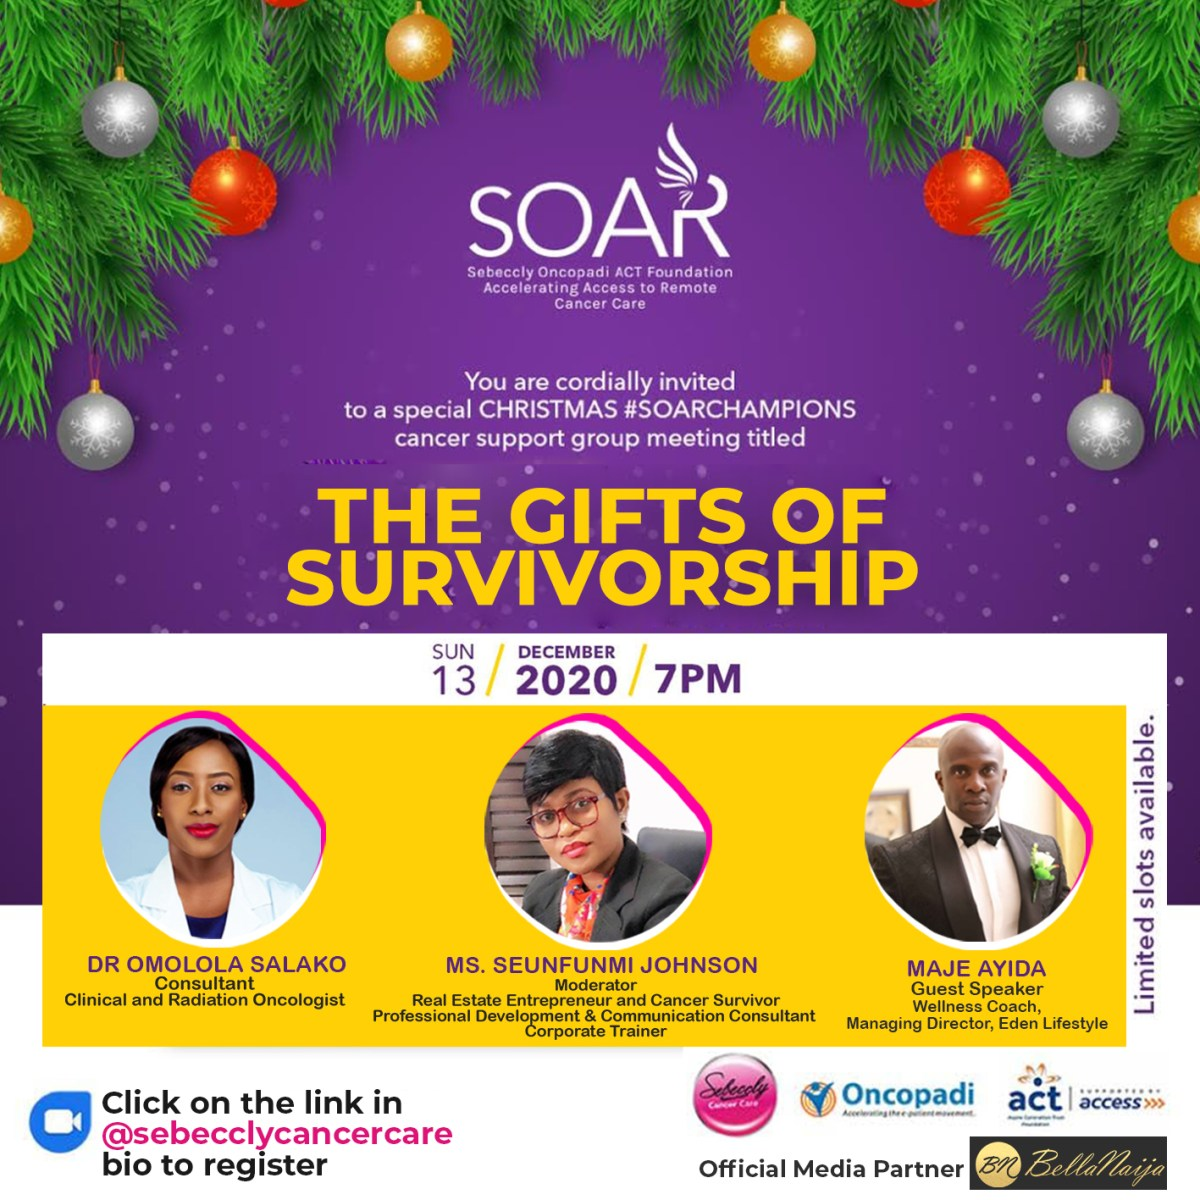 The Gifts of Survivorship